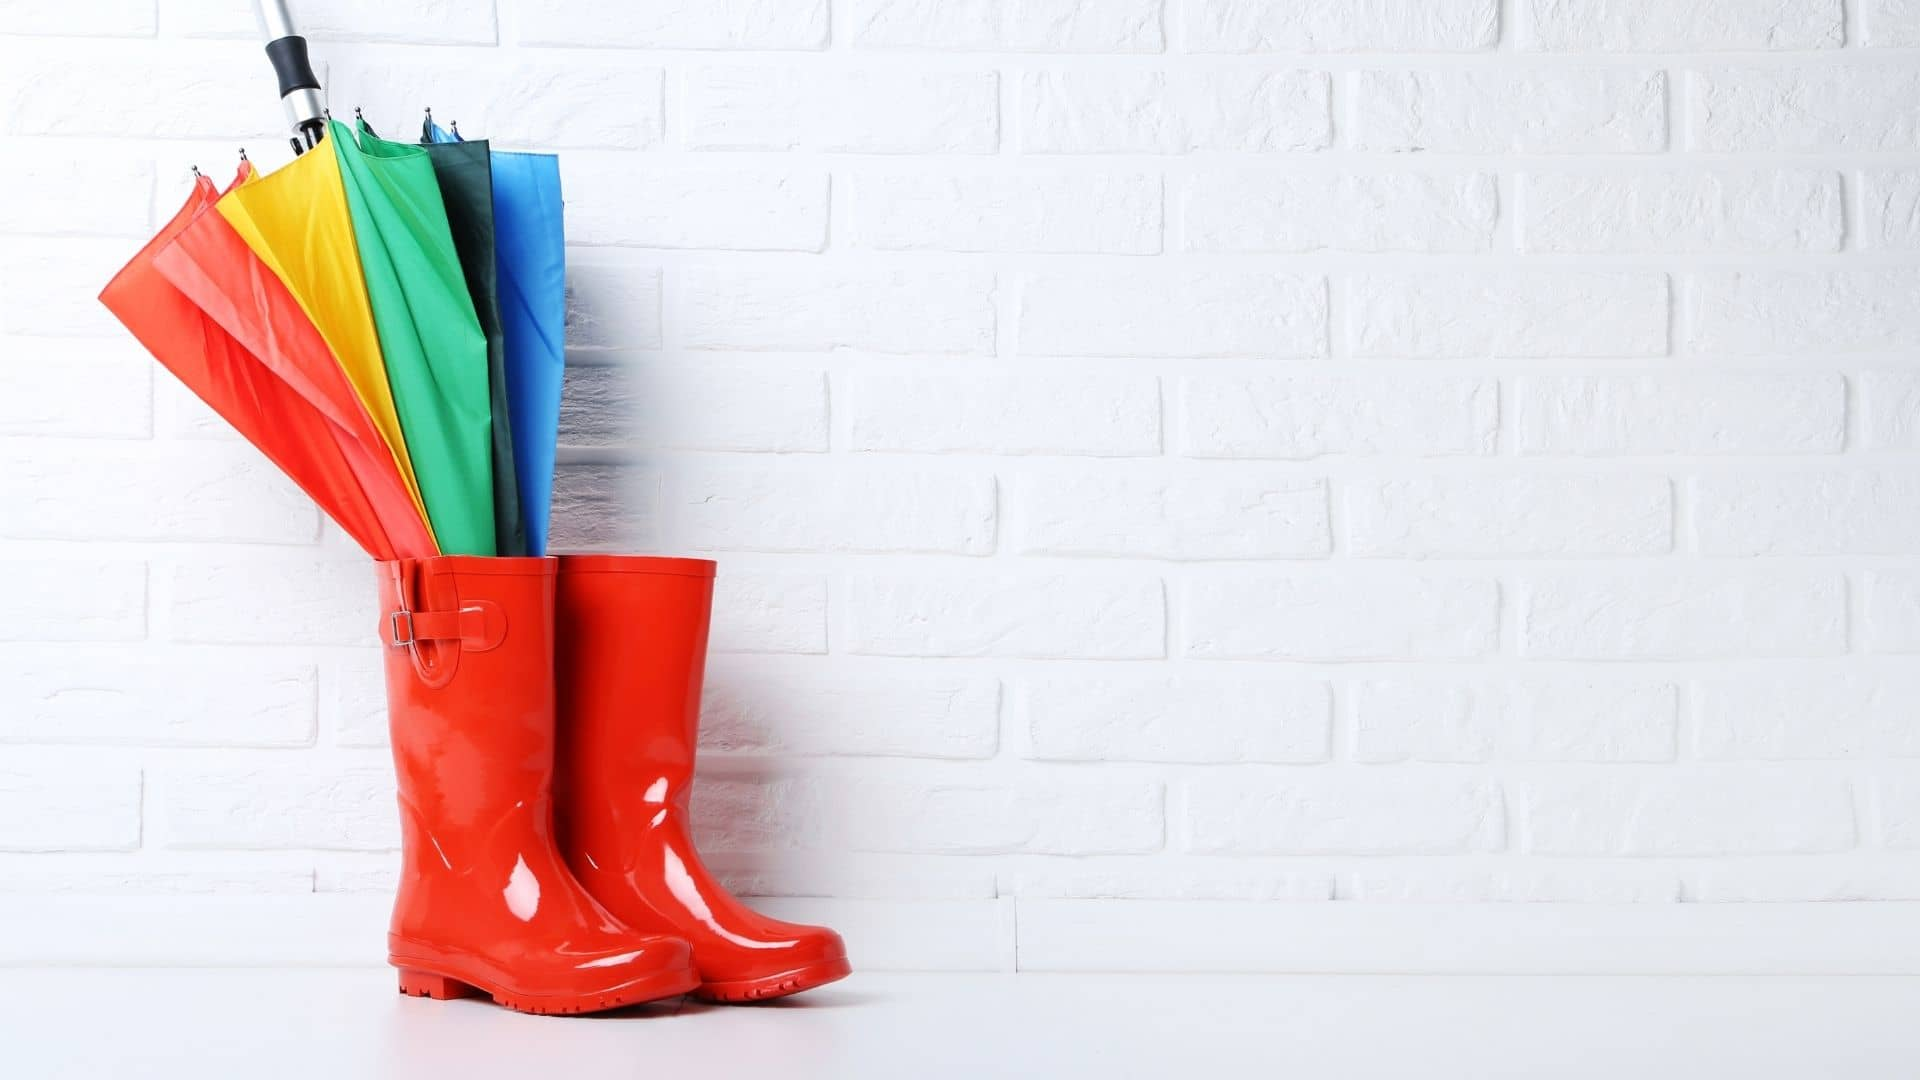 How to paint over rubber boots